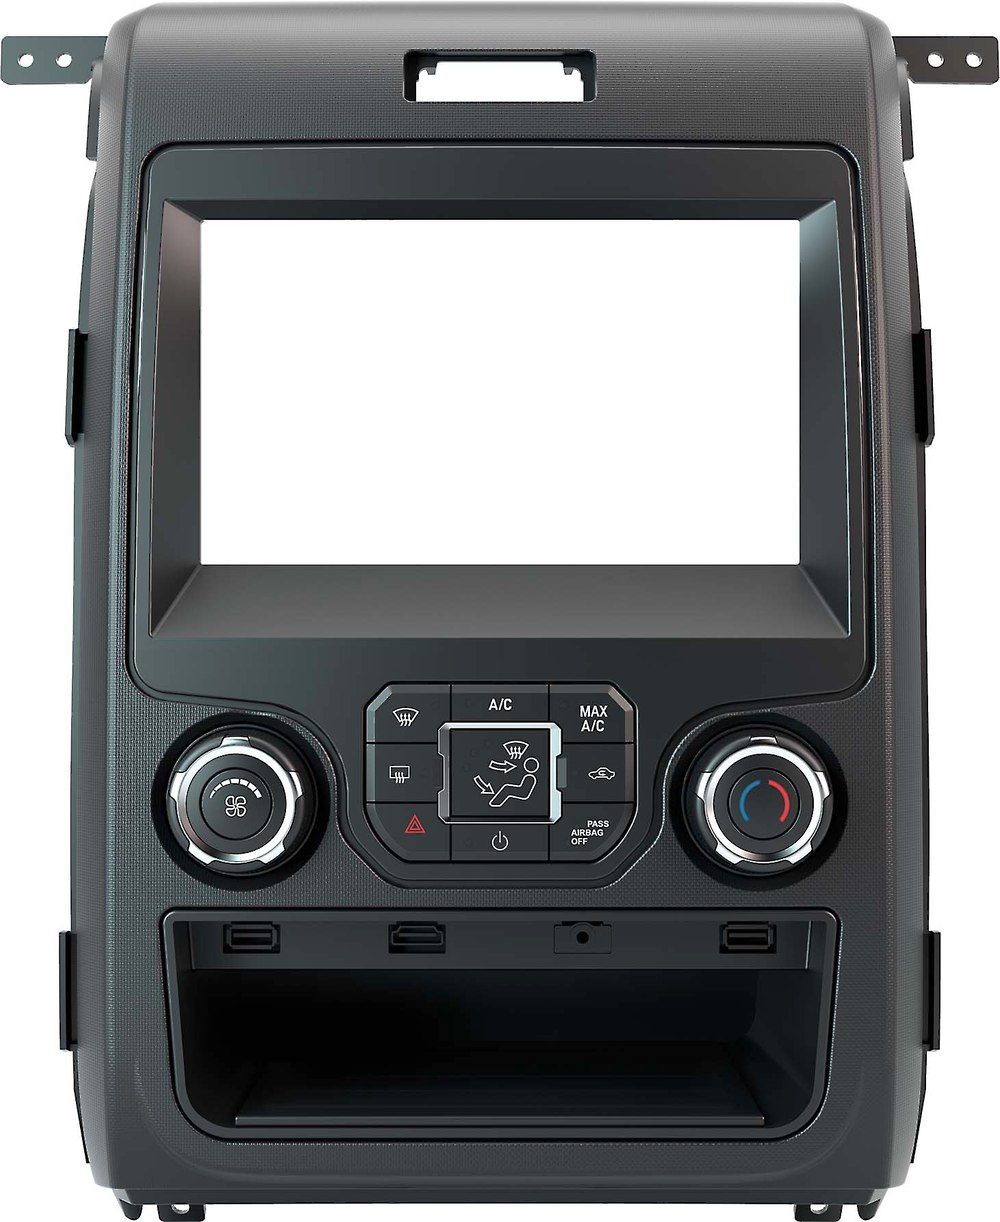 x794K150 F idatalink k150 dash kit install a new car stereo in select 2013 14 Dash Kit for F150 at sewacar.co